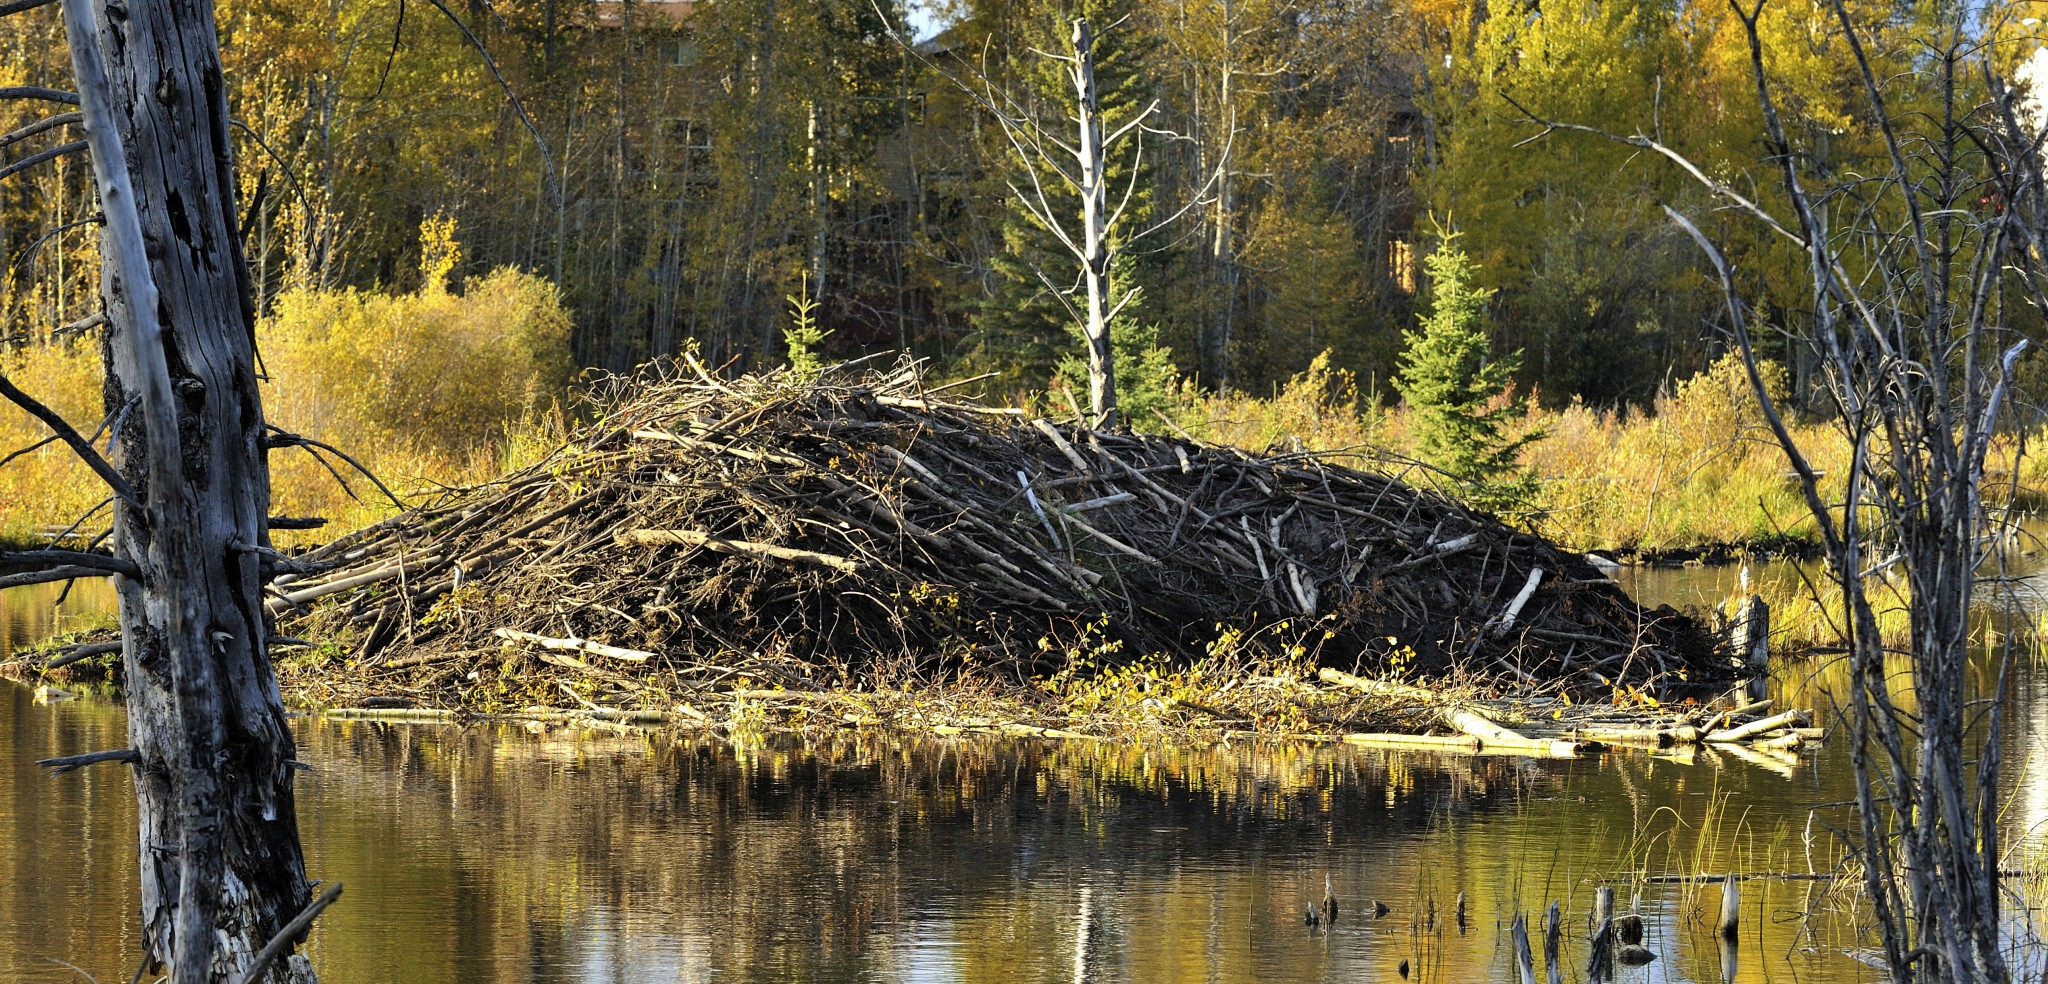 Beavers are ecosystem engineers; and apparently pretty good structural engineers, too. Photo by Robert McGouey/All Canada Photos/Corbis